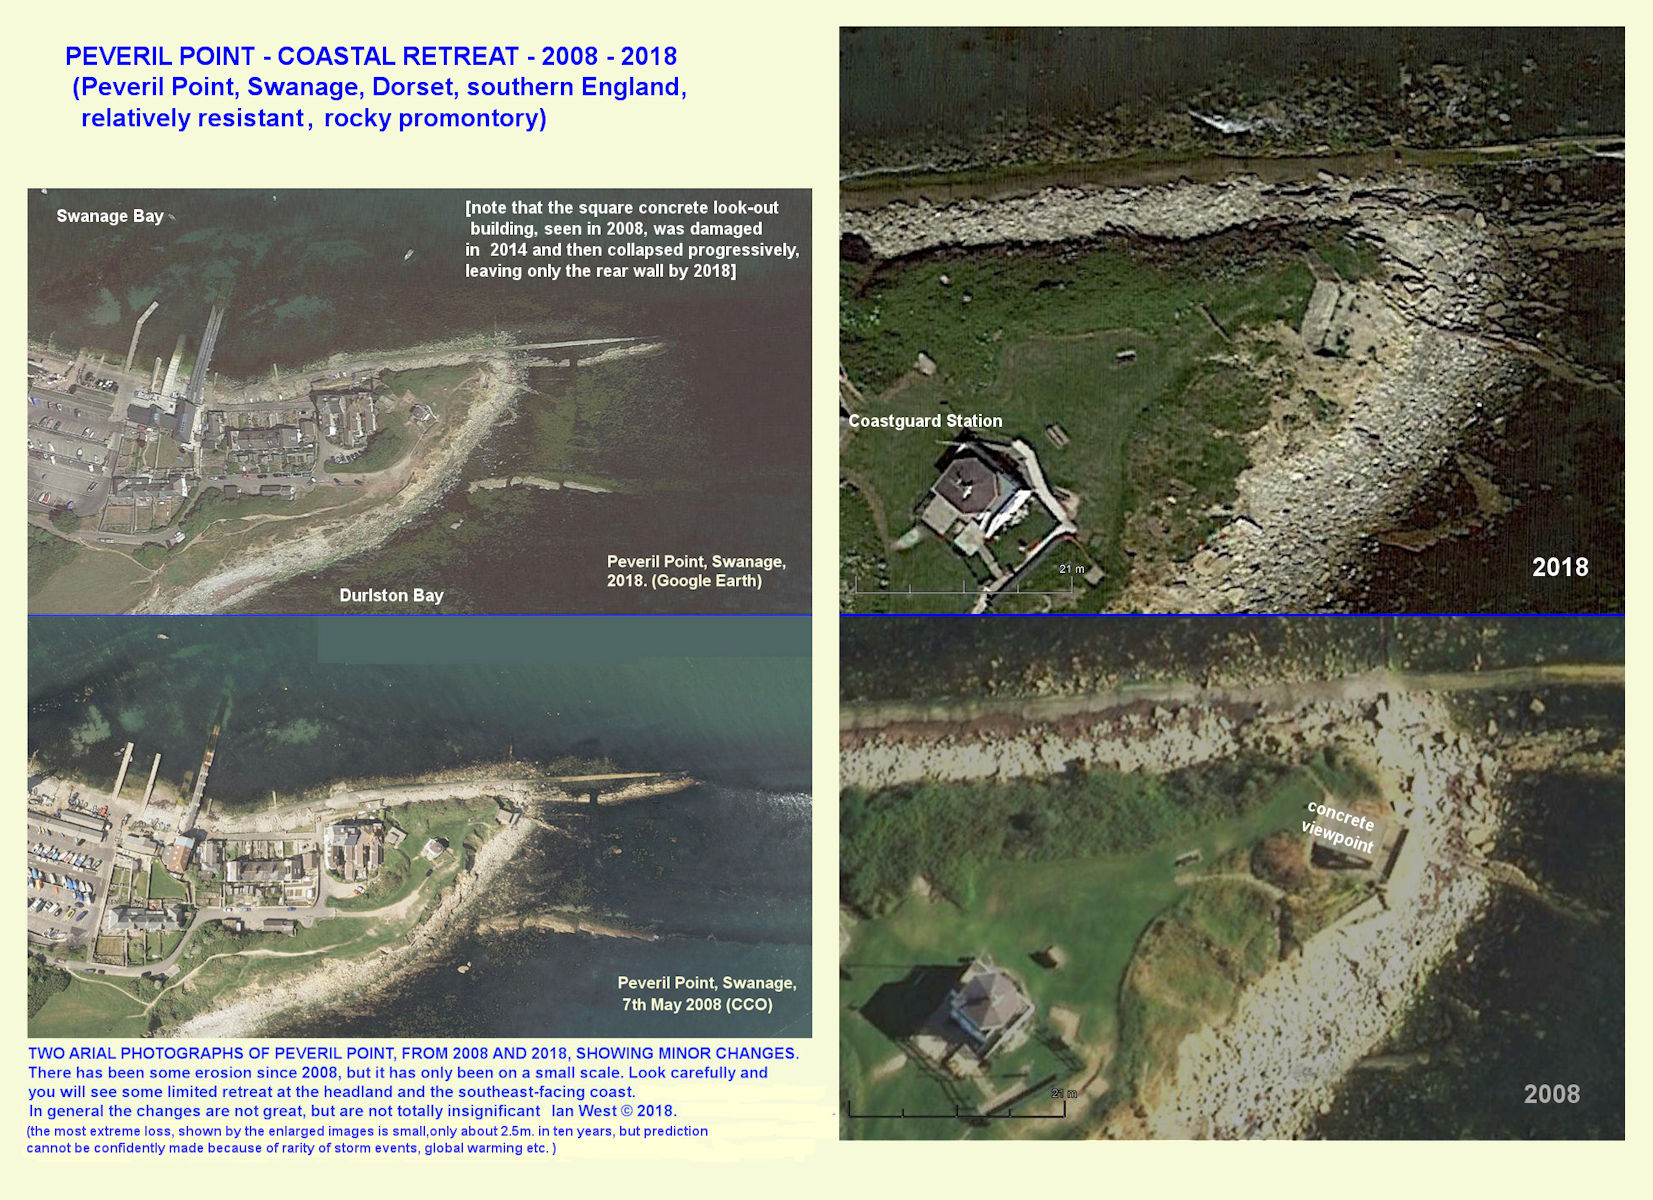 Comparison of aerial photographs of Peveril Point, Durlston Bay, Swanage, taken in 2008 and in 2018, showing erosion and retreat at the small headland